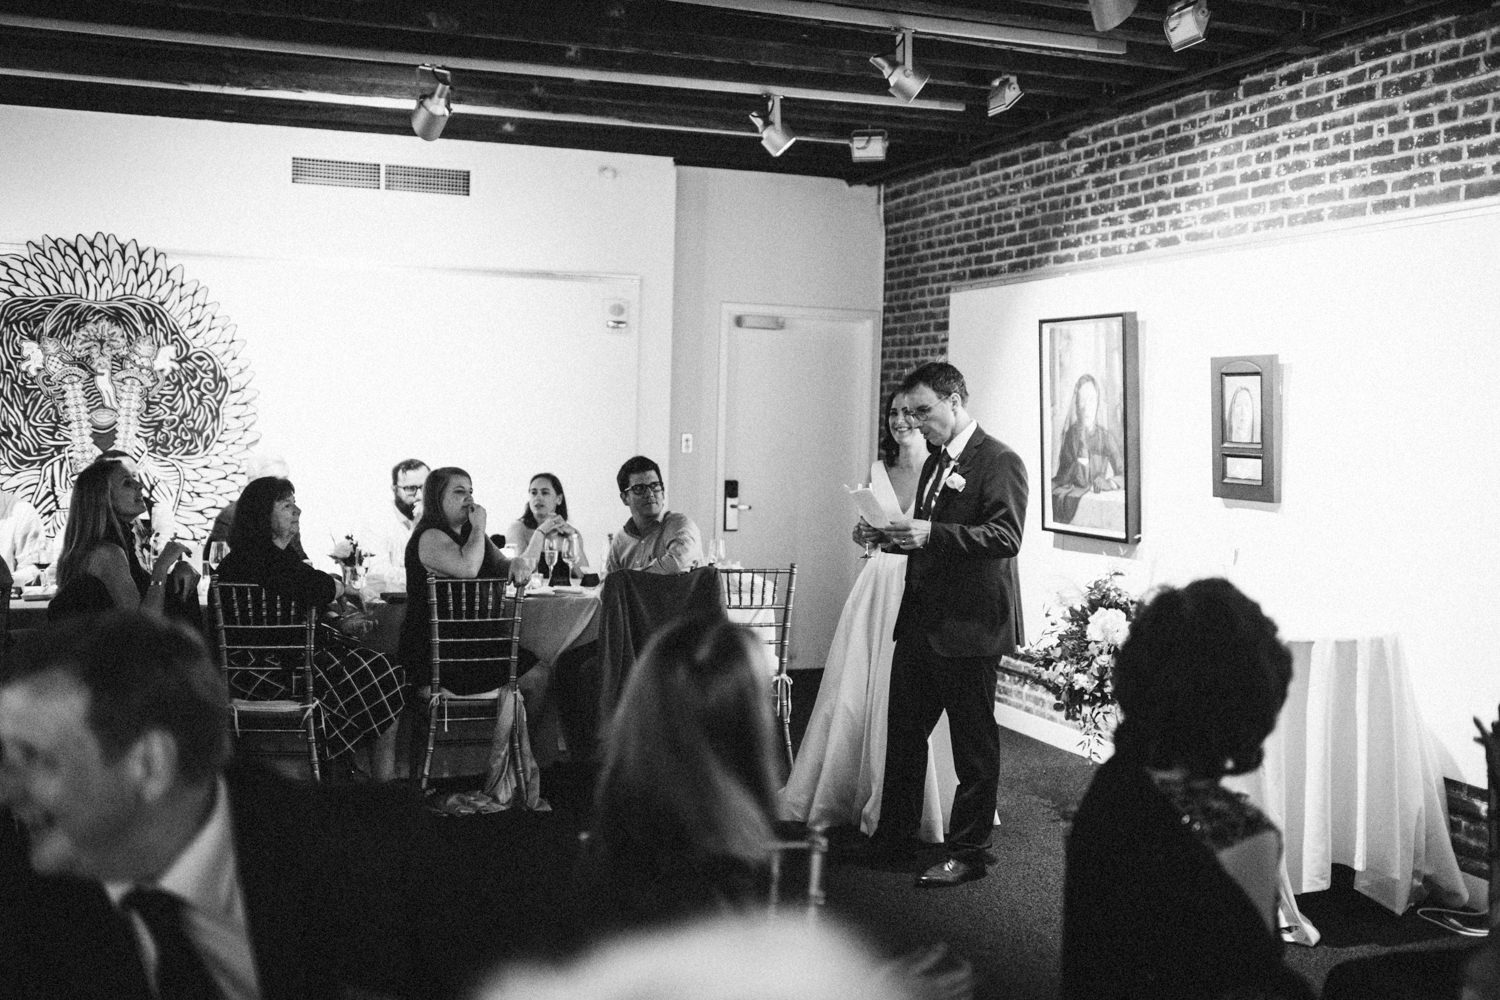 Jessica-Arno-Intimate-21c-Museum-Louisville-Kentucky-Wedding-By-Sarah-Katherine-Davis-Photography-762bw.jpg